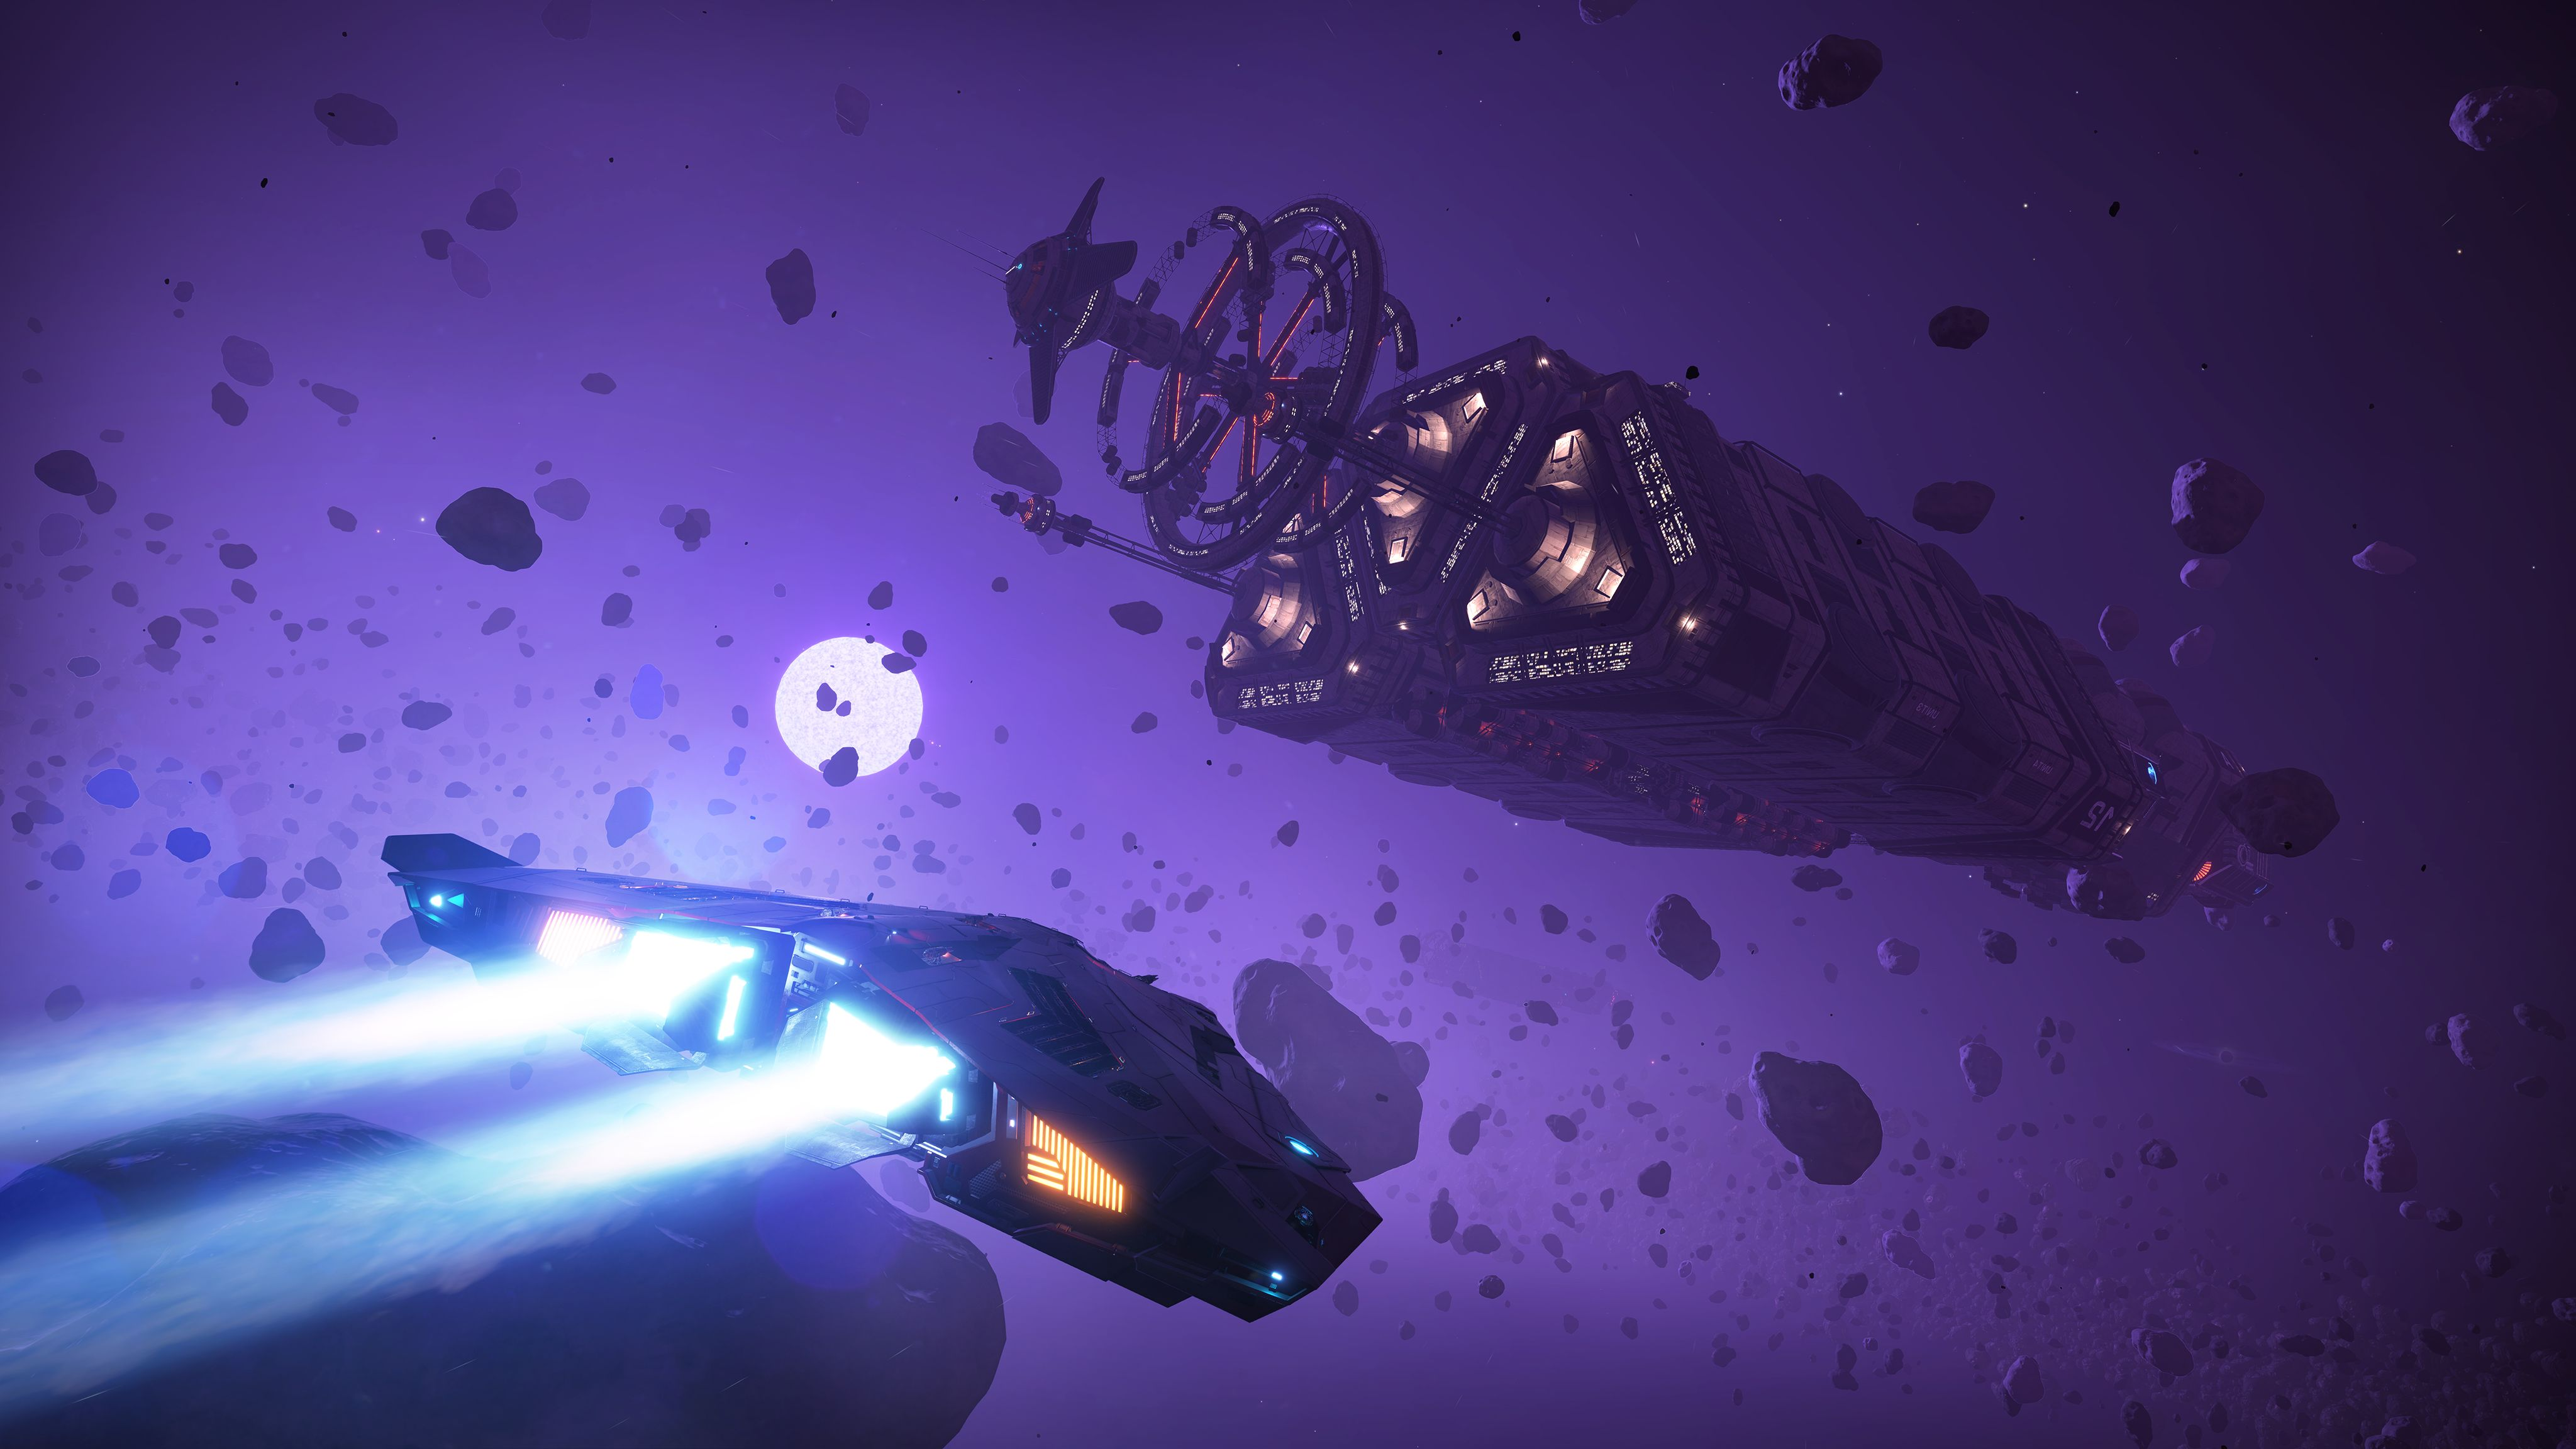 Elite Dangerous: Horizons Update 2 3 Out Today, Adds Multi-crew Co